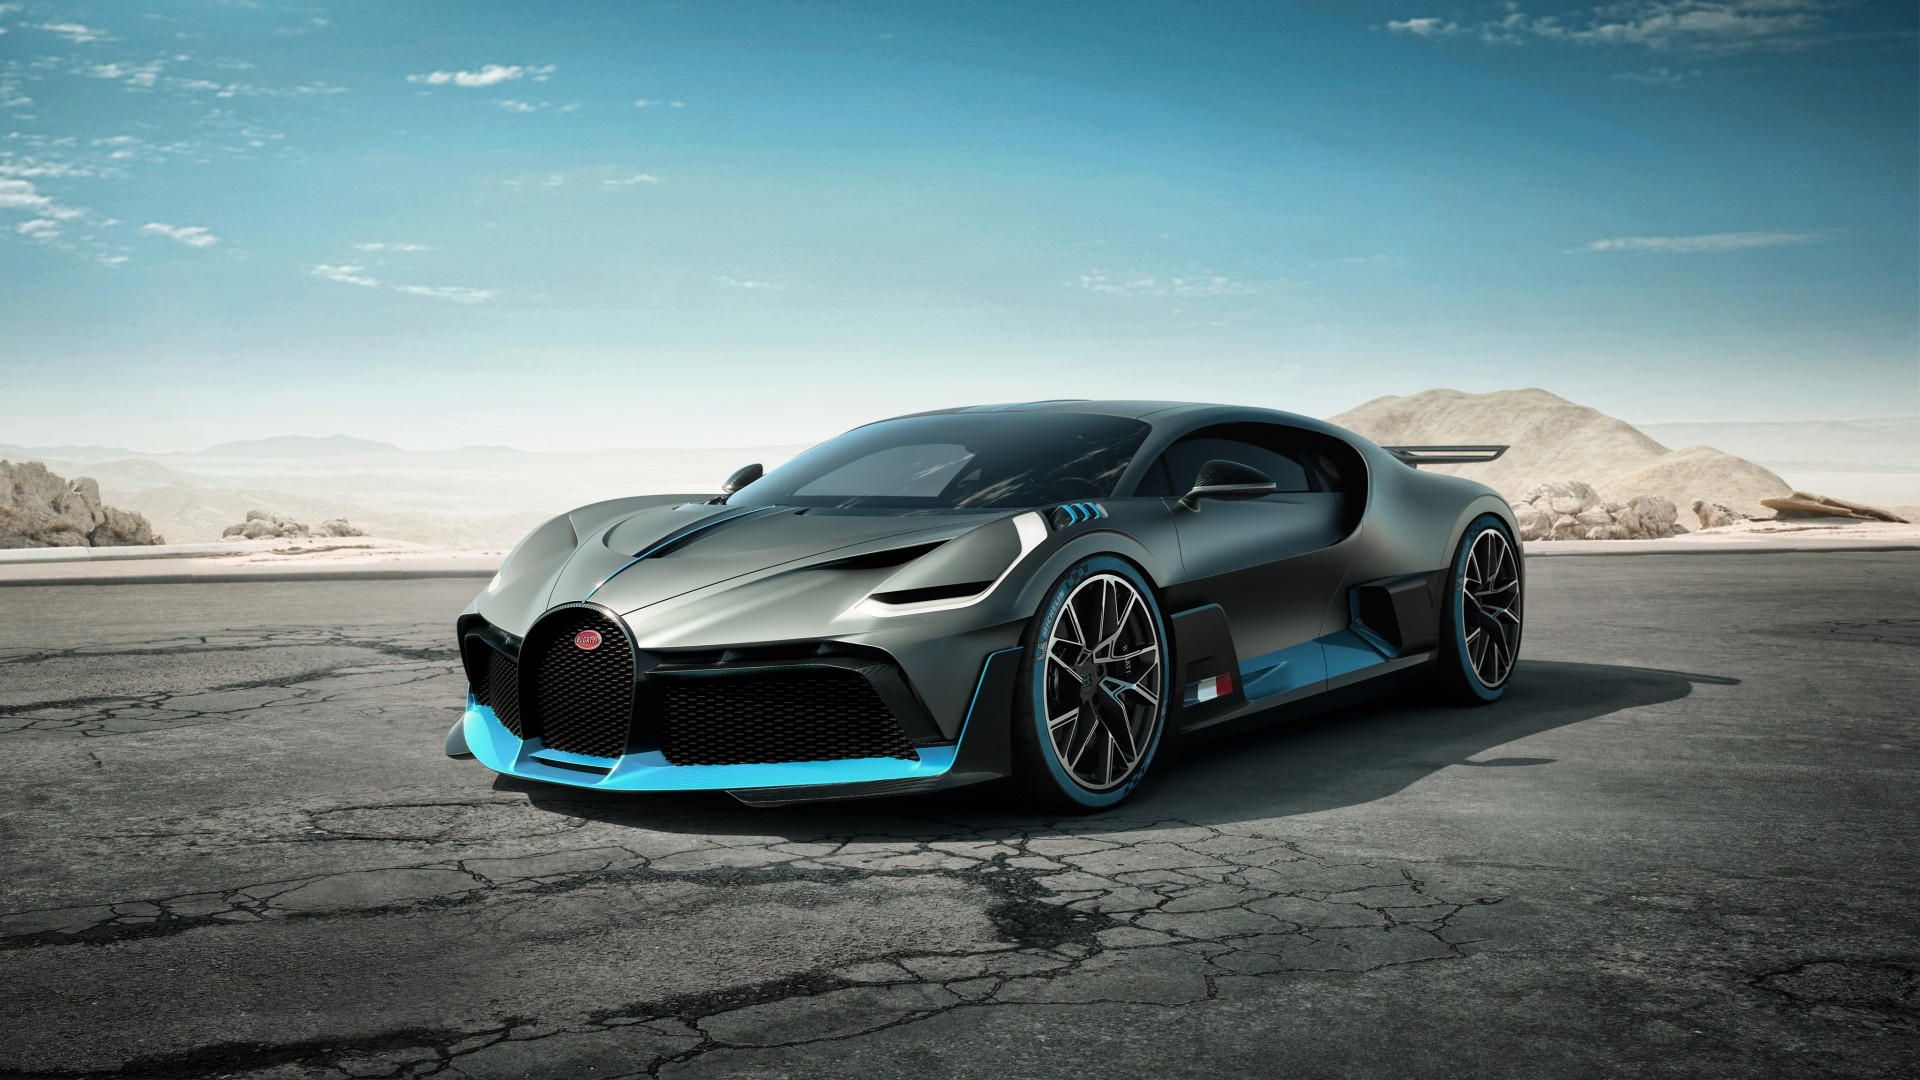 Wallpaper Bugatti Divo 2019 Cars Supercar 4k Cars Bikes 20167